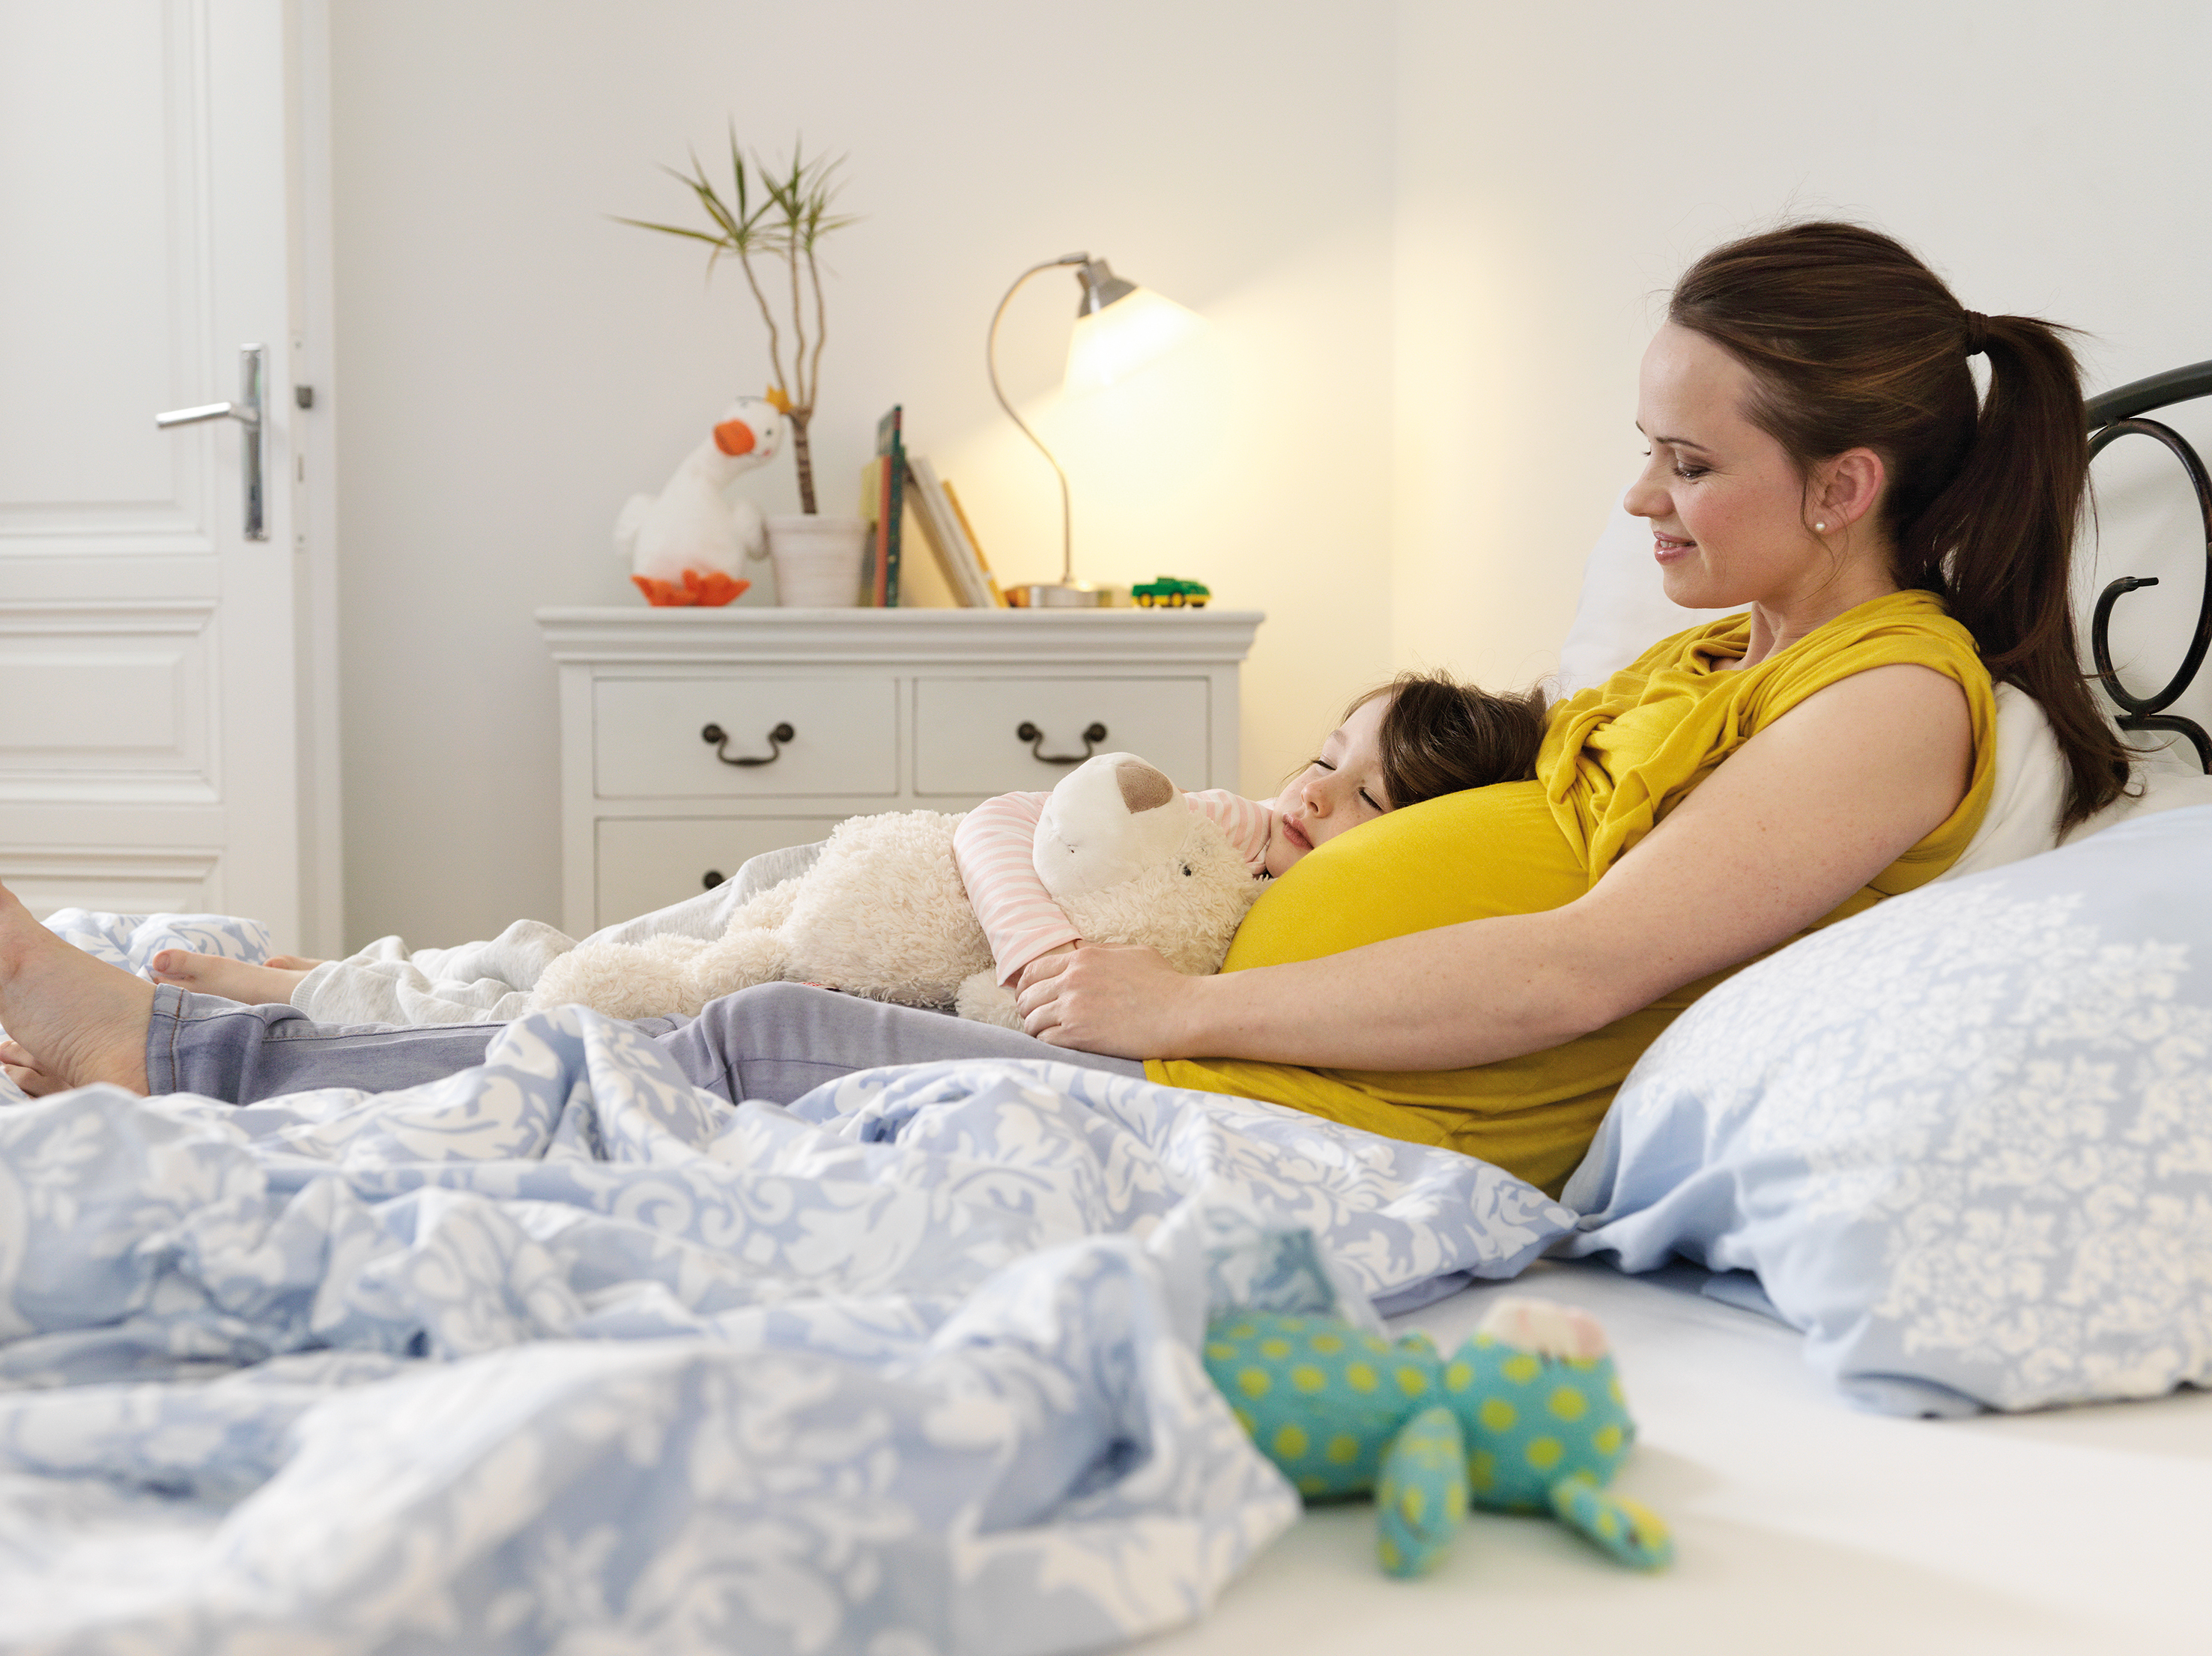 Pregnant woman with child in bed